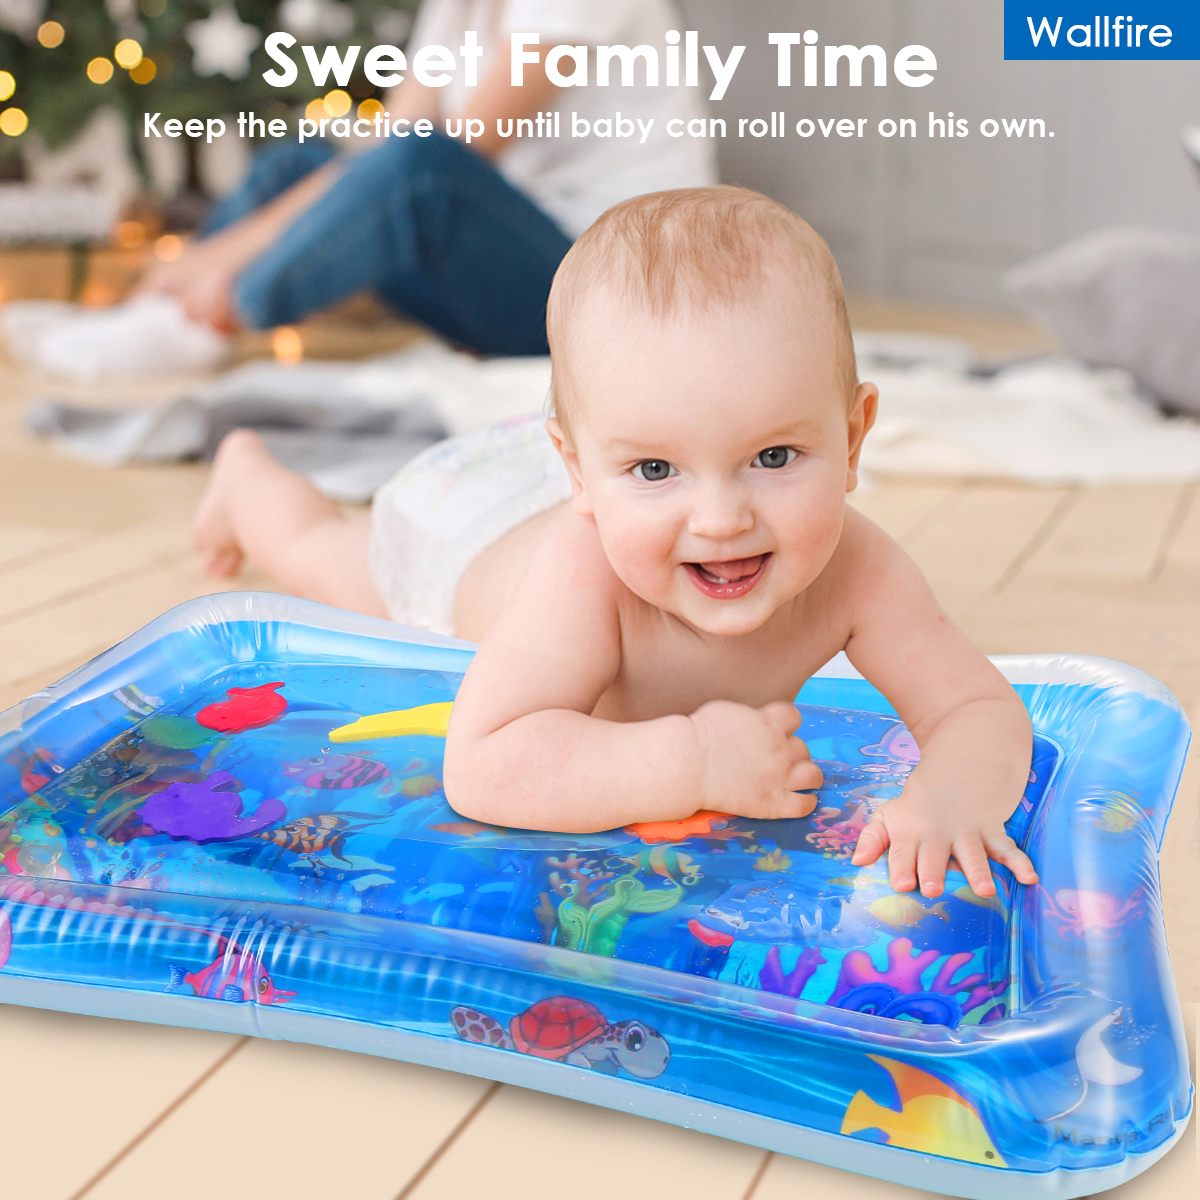 Baby Kids Water Play Mat Toys Inflatable thicken PVC infant Tummy Time  Playmat Toddler Activity Play Center water mat for babies|Play Mats| -  AliExpress